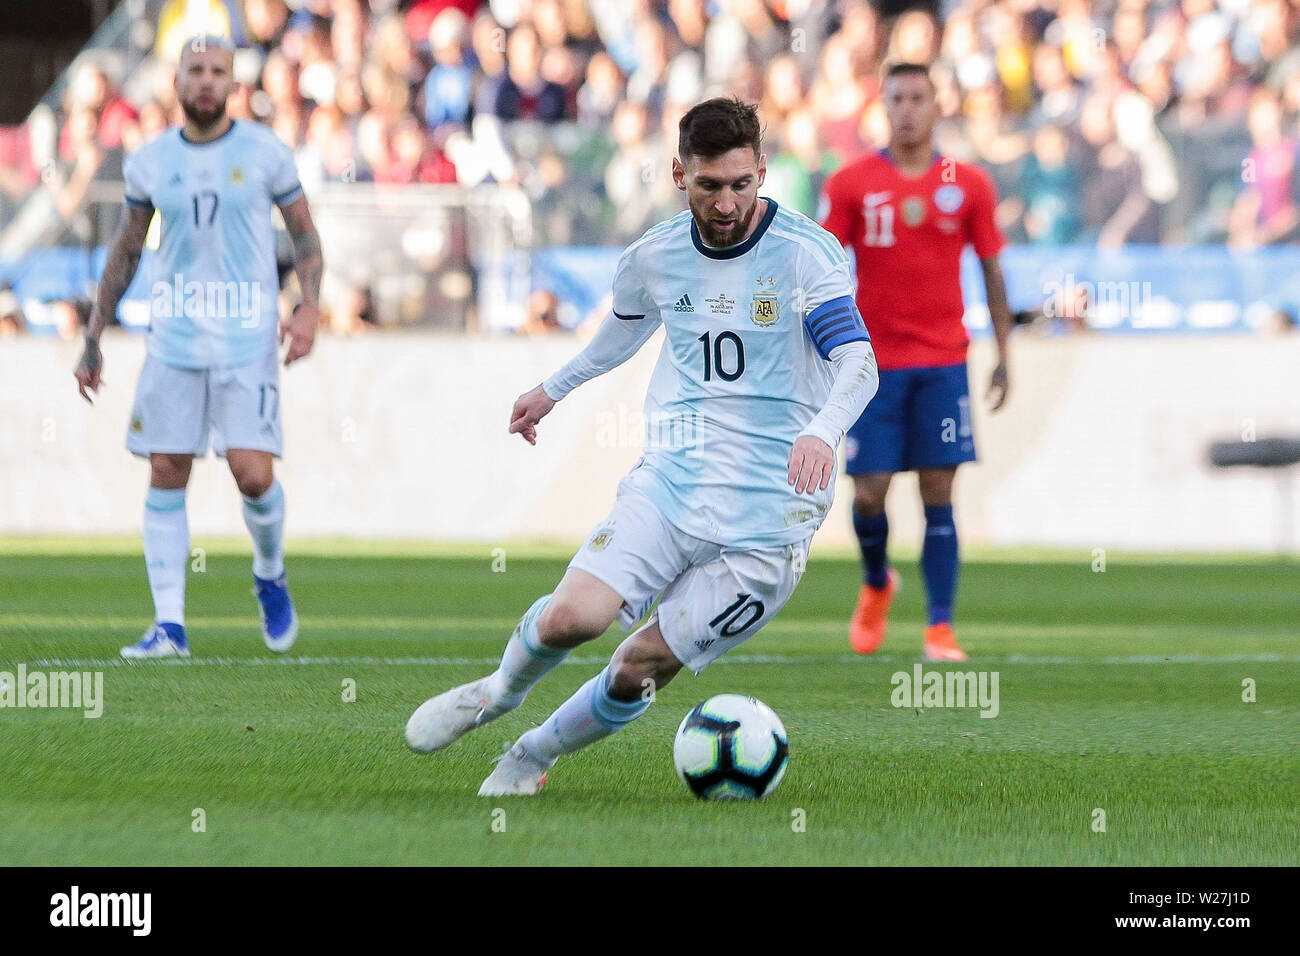 6th July 2019, Arena Corinthians Stadium, Sao Paulo, Brazil; Copa America international football, 3rd-4th playoff final, Argentina versus Chile; Lionel Messi of Argentina gets a goal chance early in the game - Stock Image